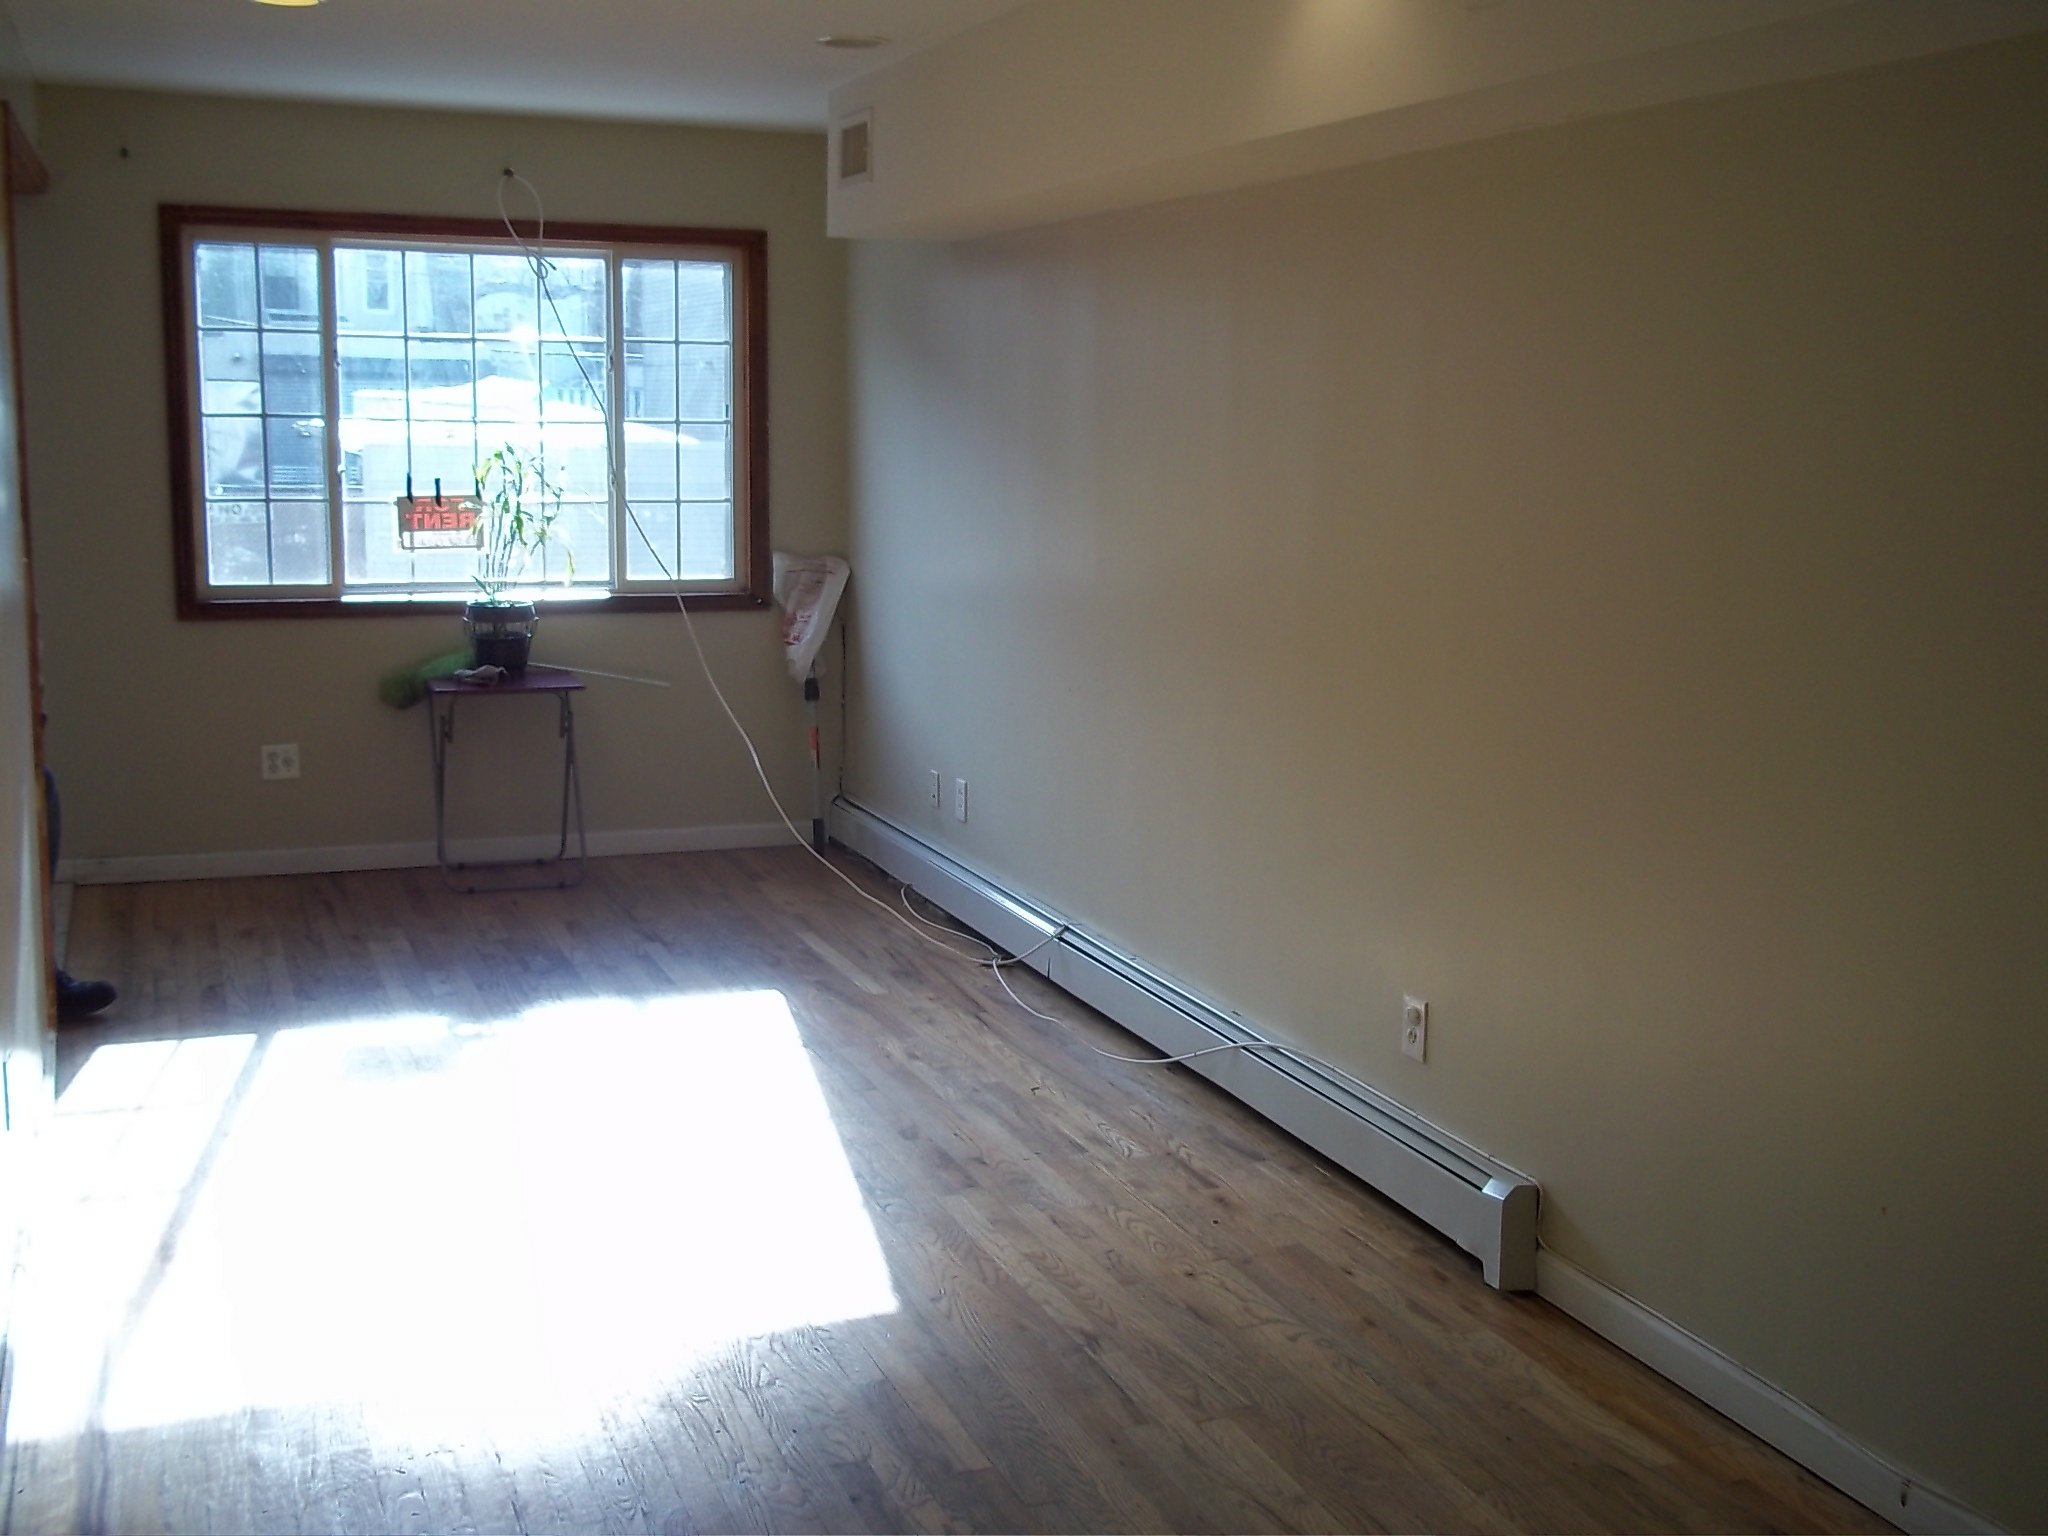 Bedford Stuyvesant 3 Bedroom Apartment For Rent Brooklyn CRG3086